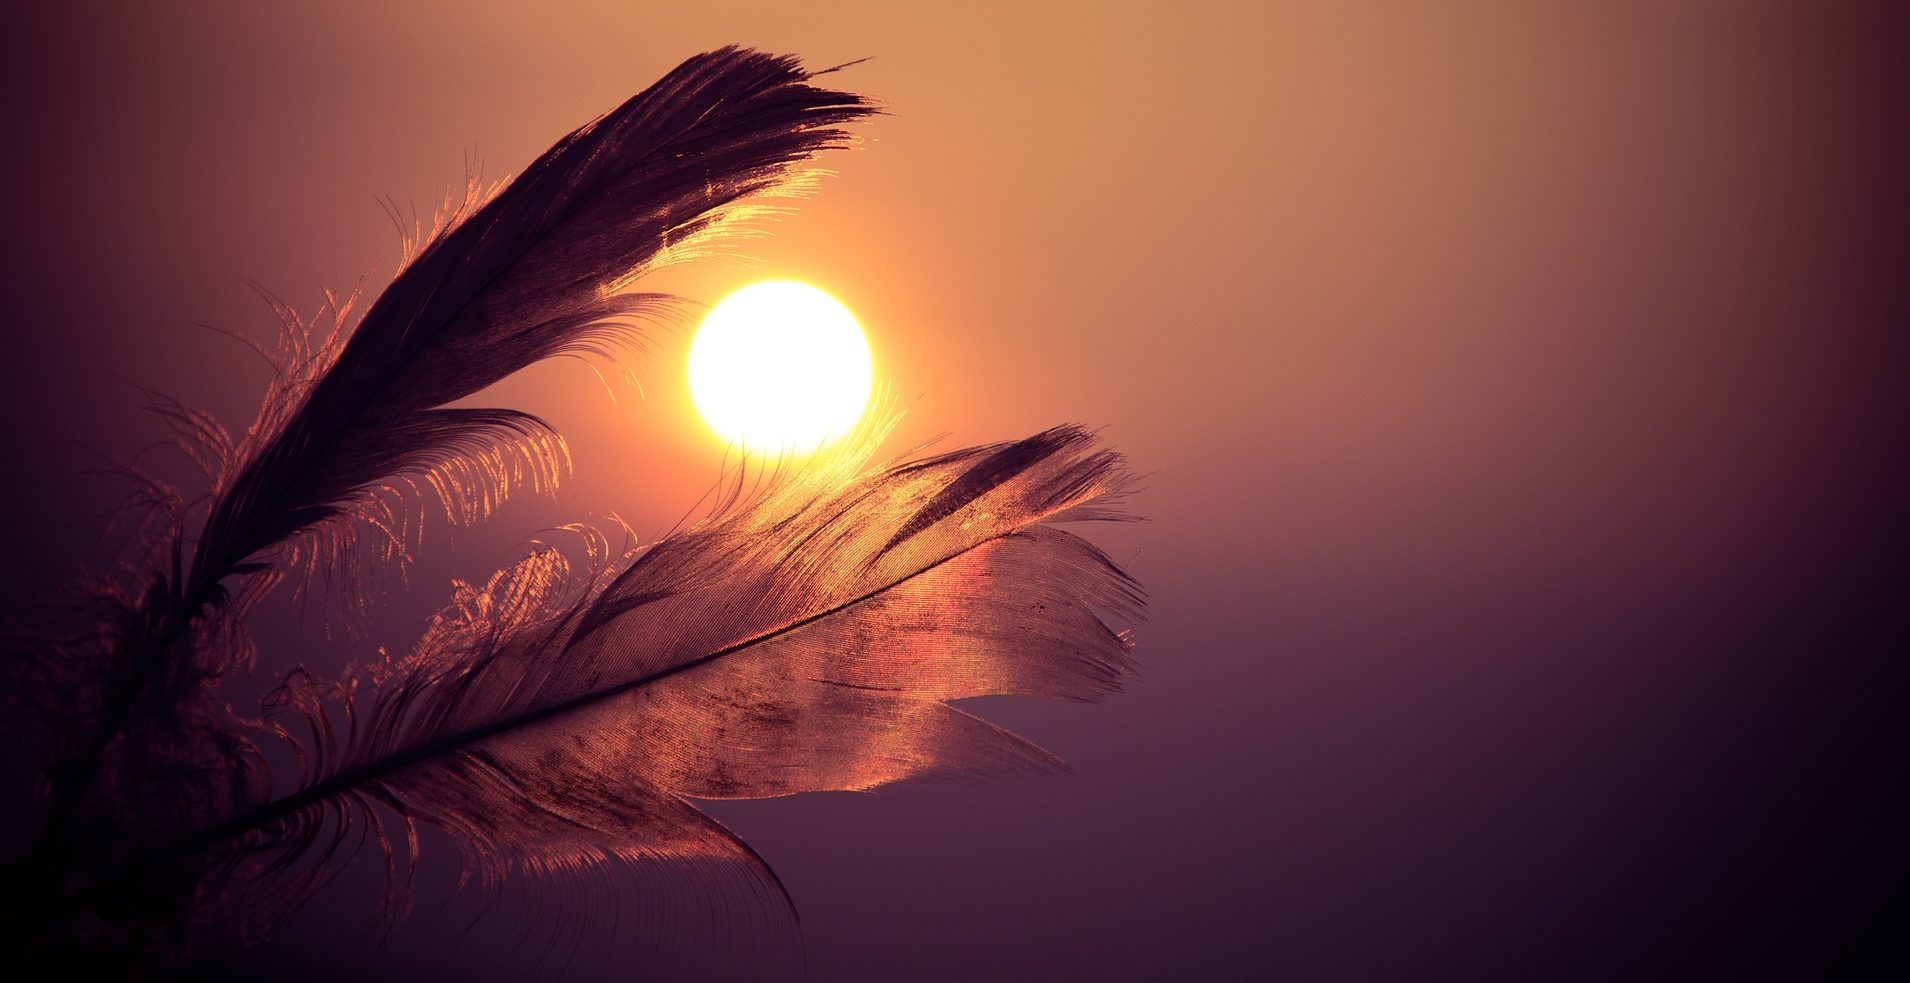 feathers-933657_1920